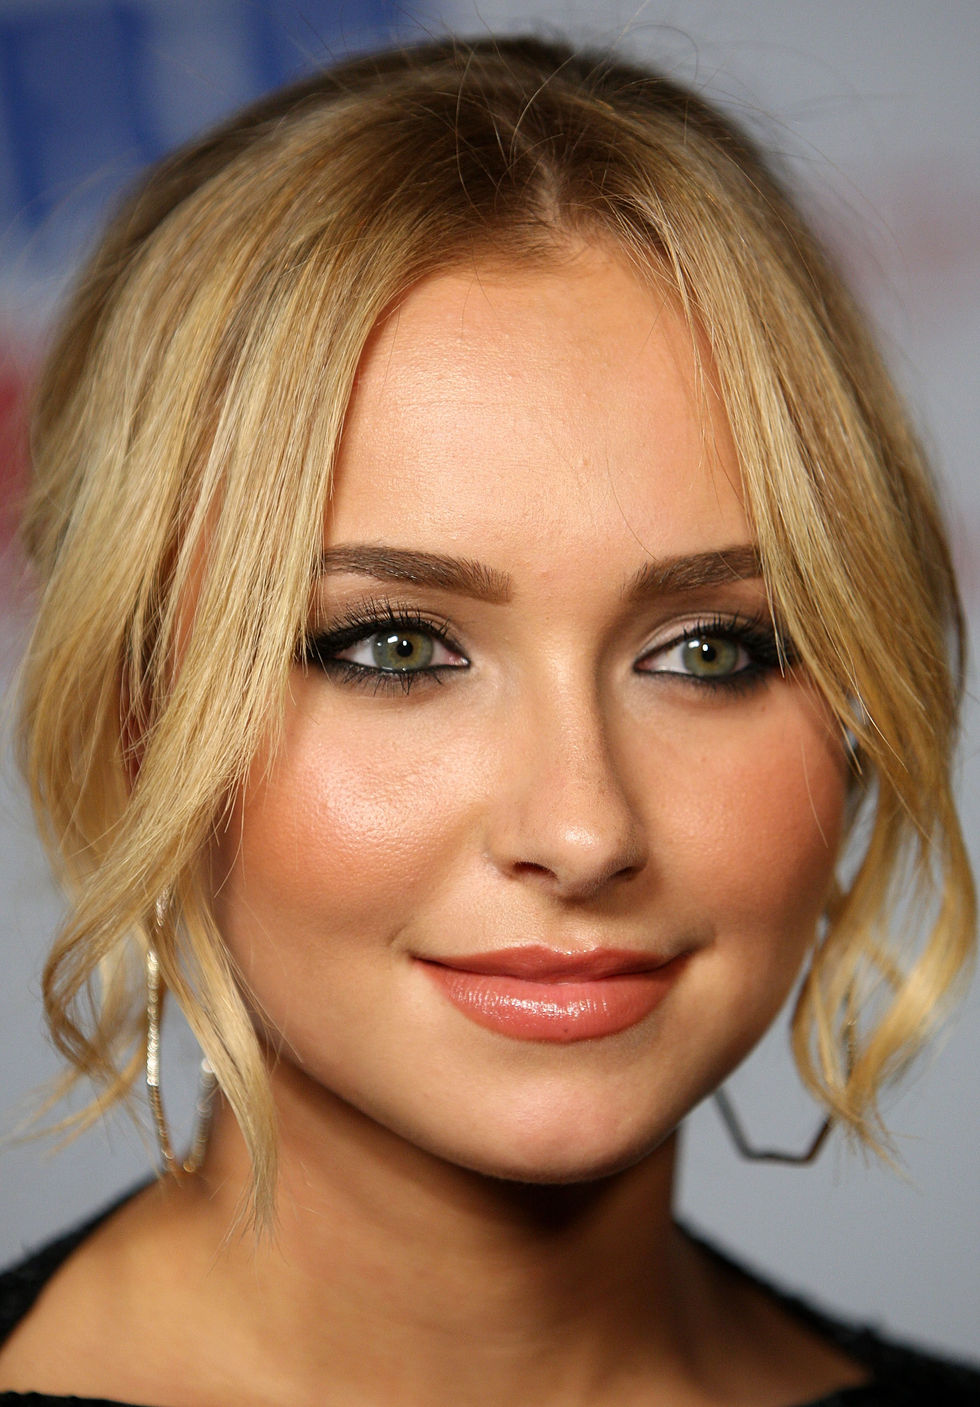 hayden-panettiere-declare-yourselfs-last-call-party-in-los-angeles-01